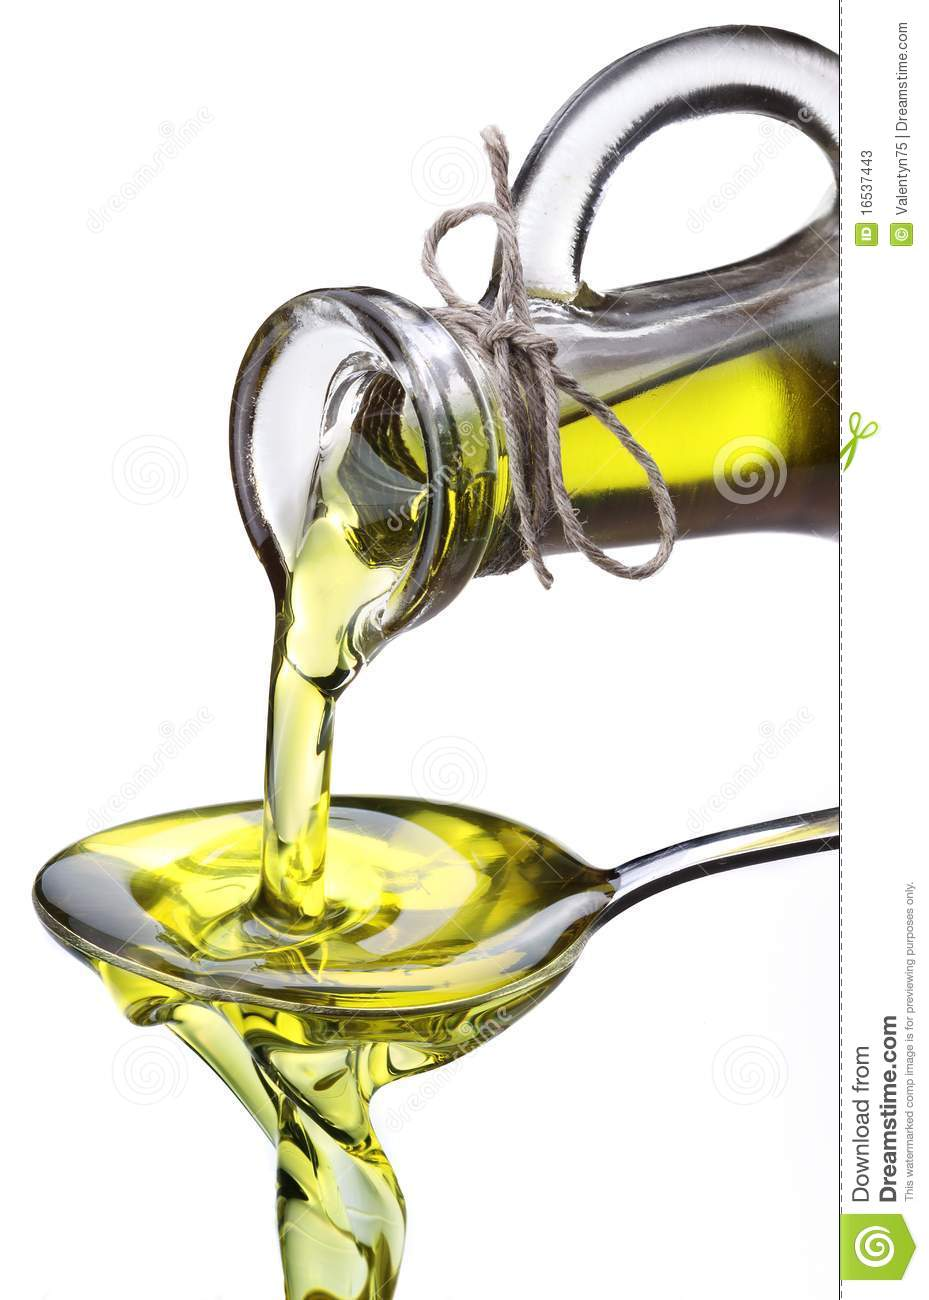 Olive Oil Flowing From Carafe Into The Spoon Stock Photos